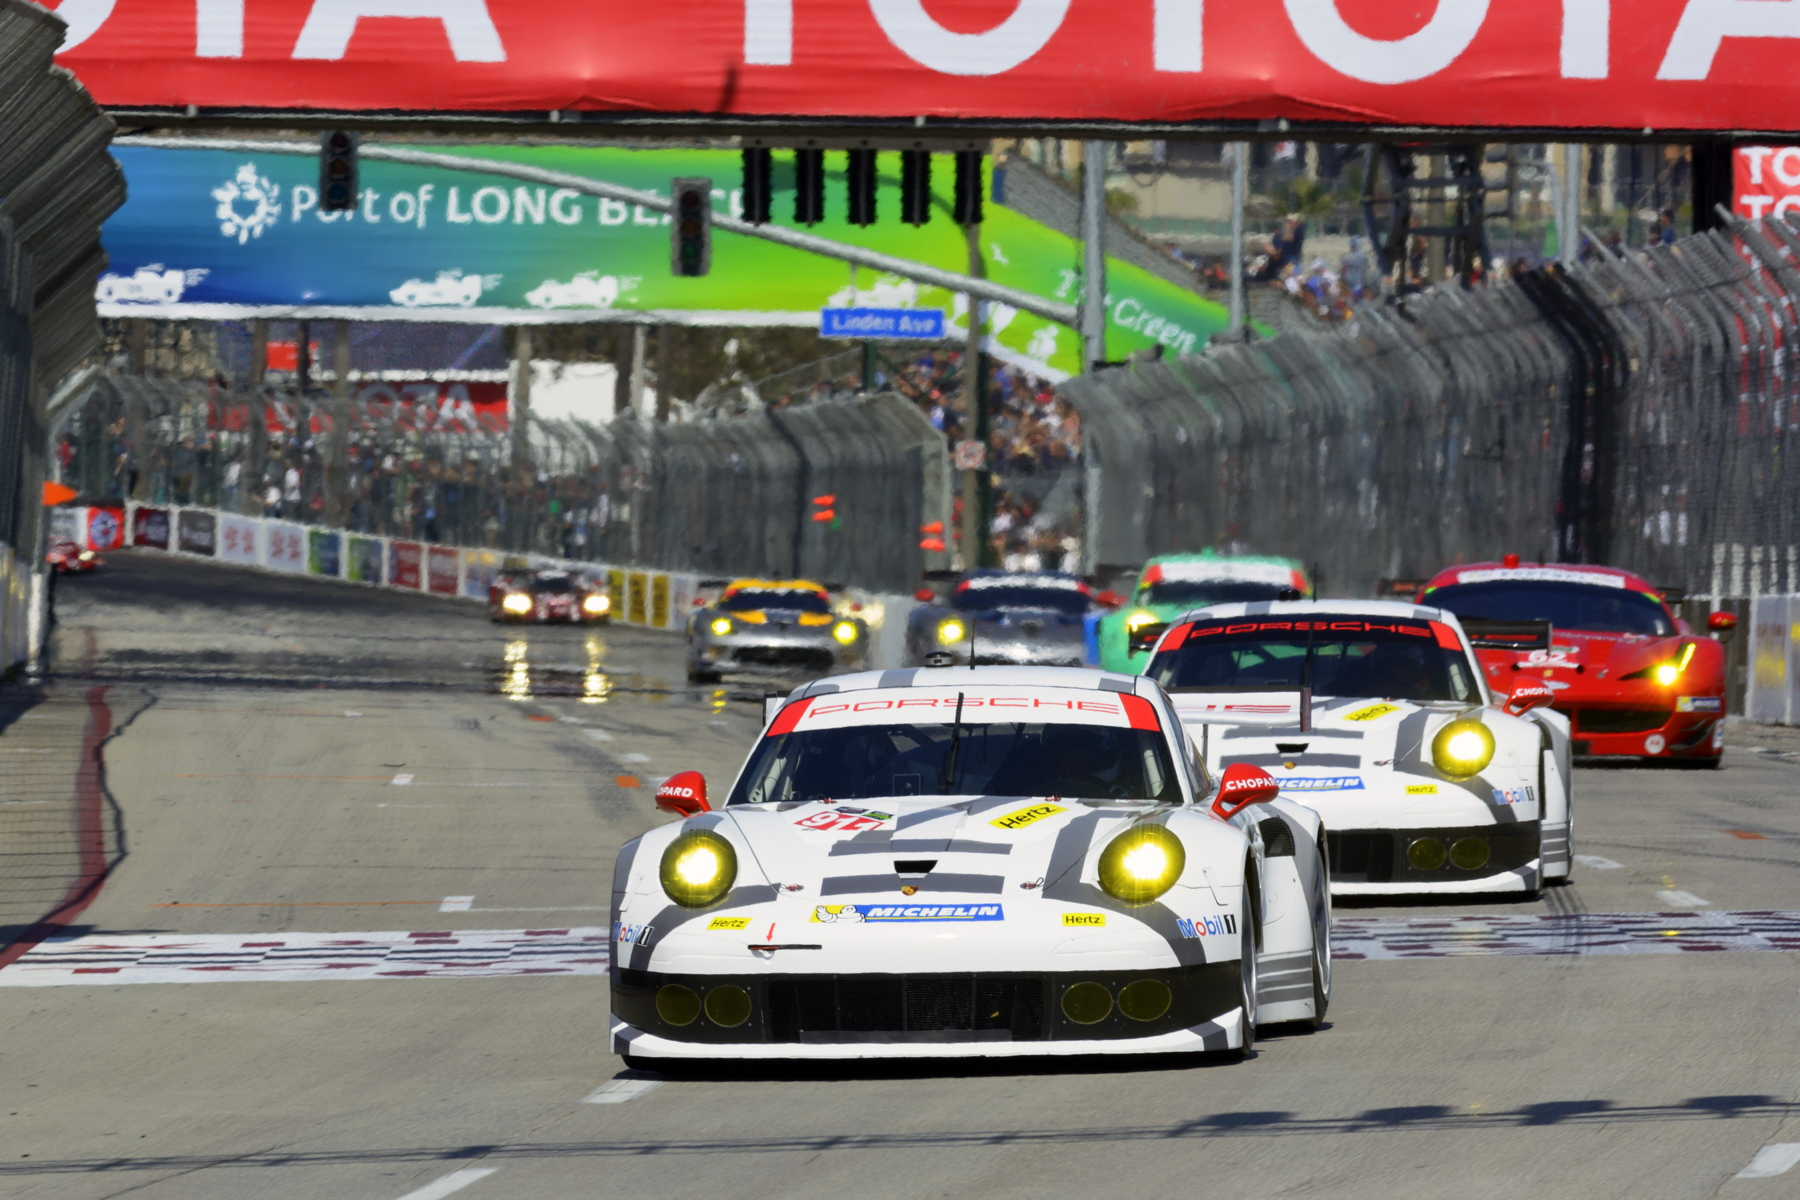 After winning the opening two rounds of the 2014 Tudor USCC season, Porsche North America Racing will be hoping to return to winning ways in California.